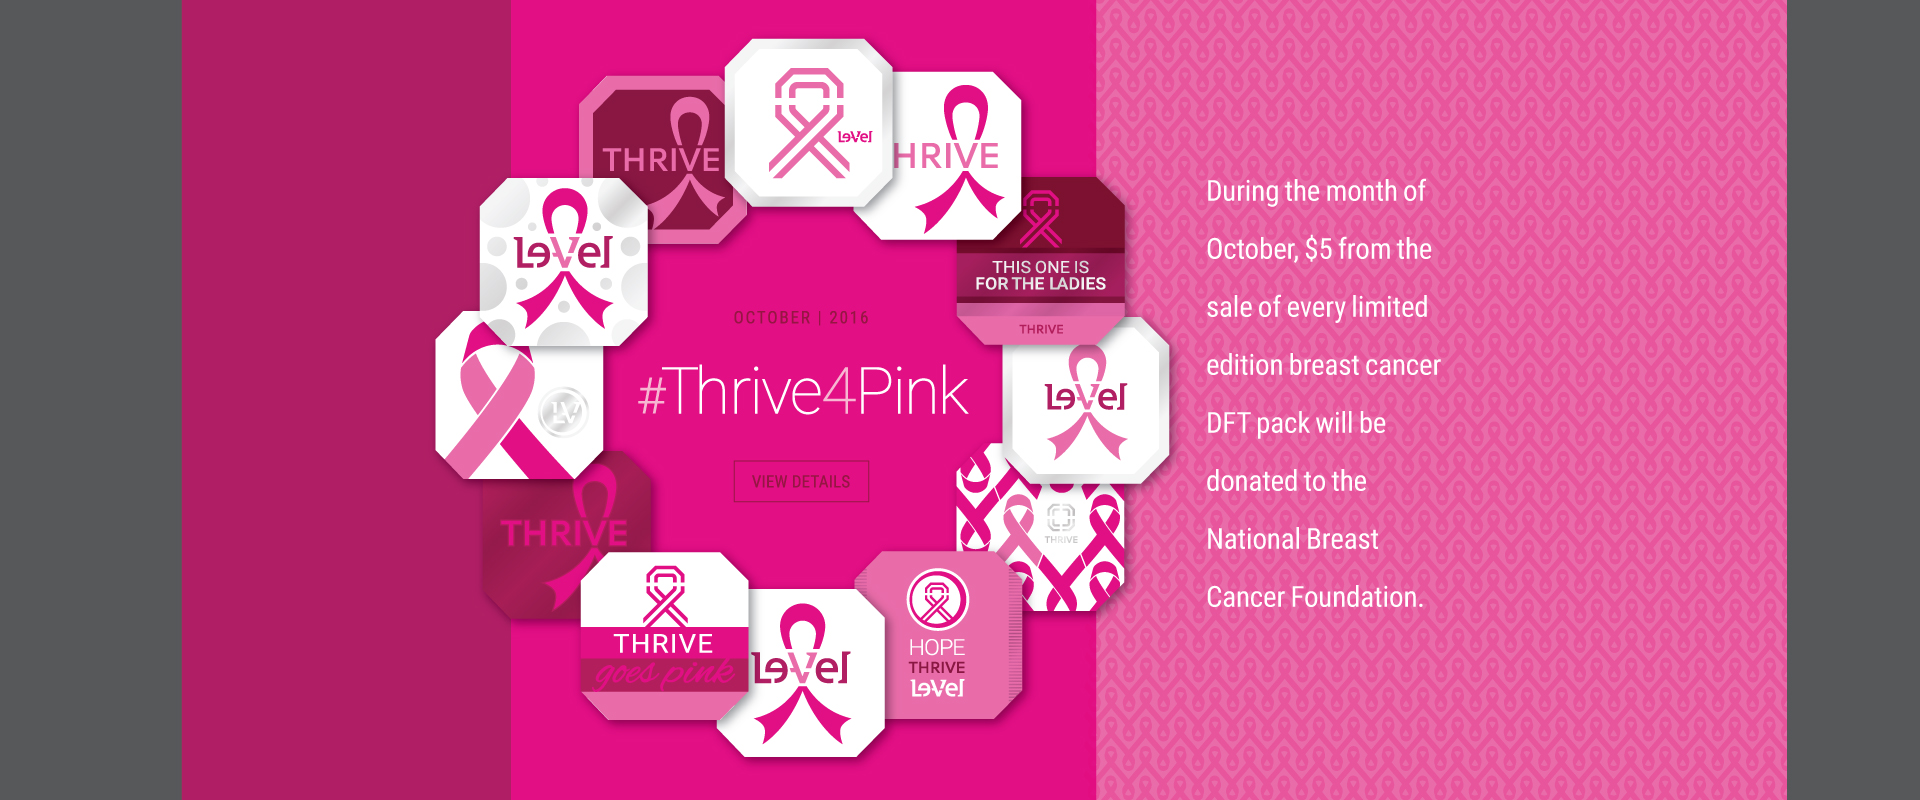 #Thrive4Pink - DFT Pink for Breast Cancer Awareness